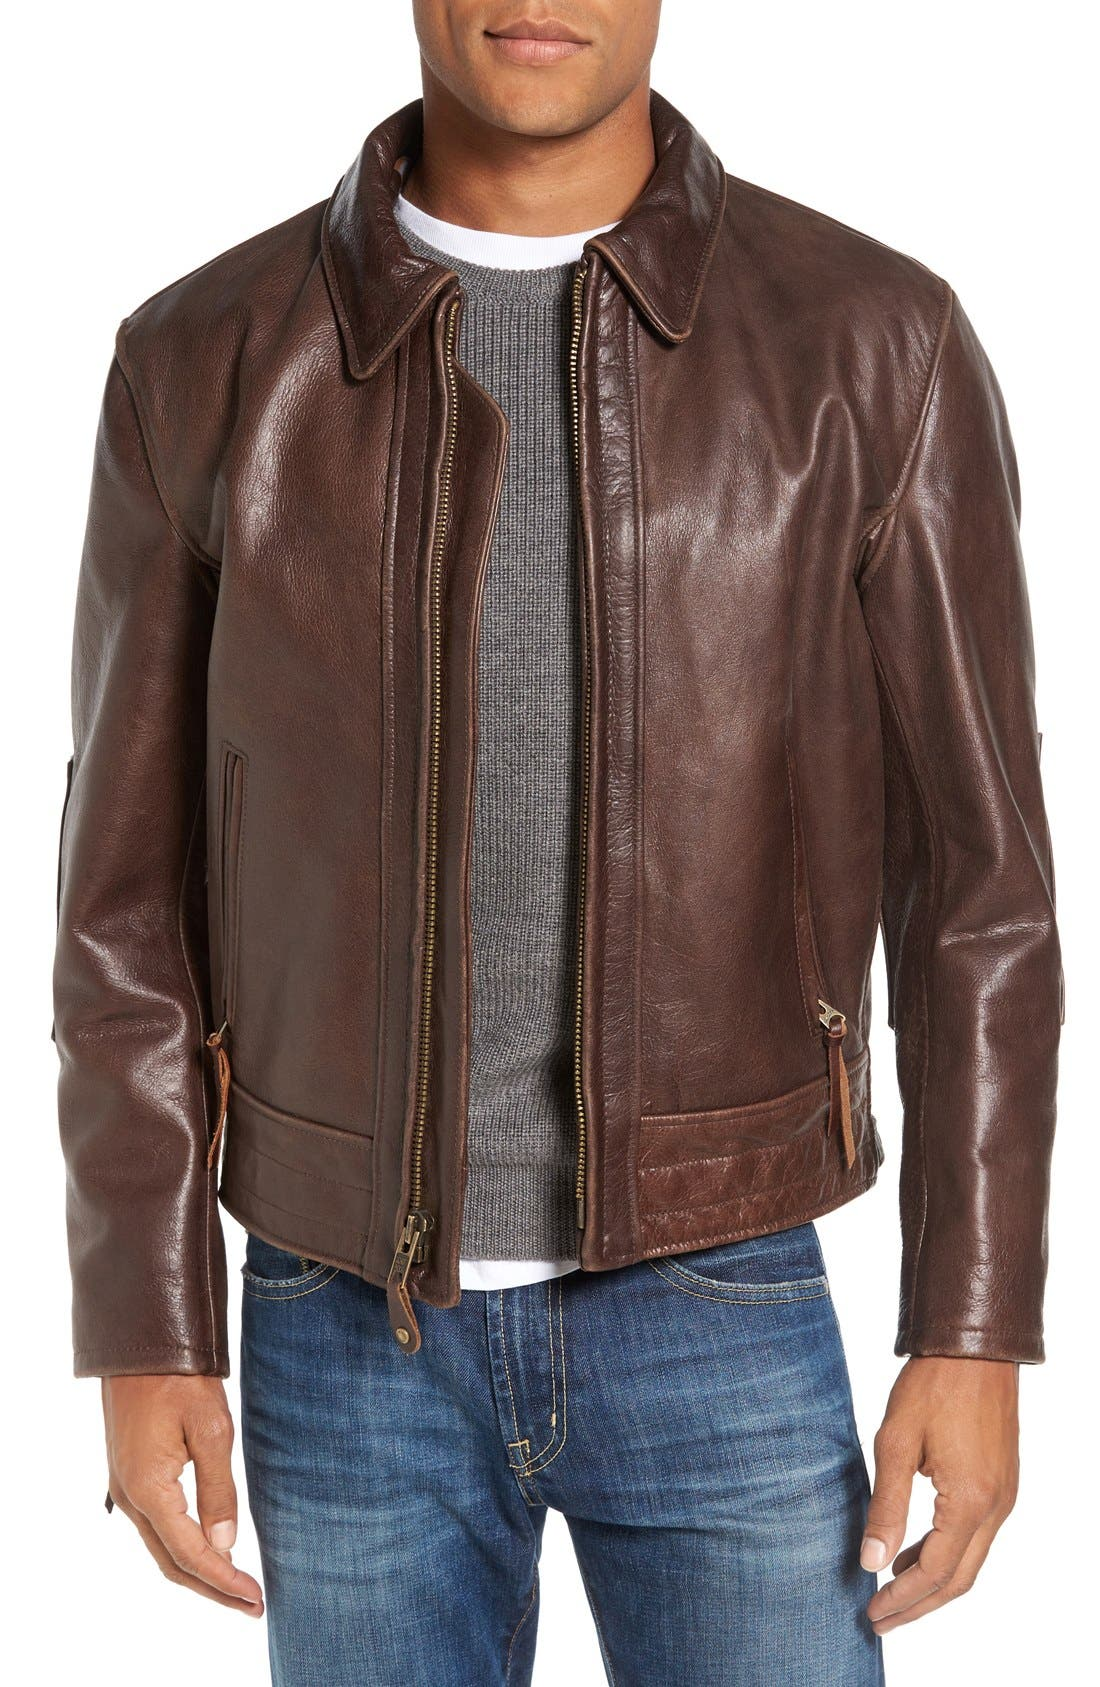 Antique Vintage Style Leather Moto Jacket,                             Main thumbnail 1, color,                             200